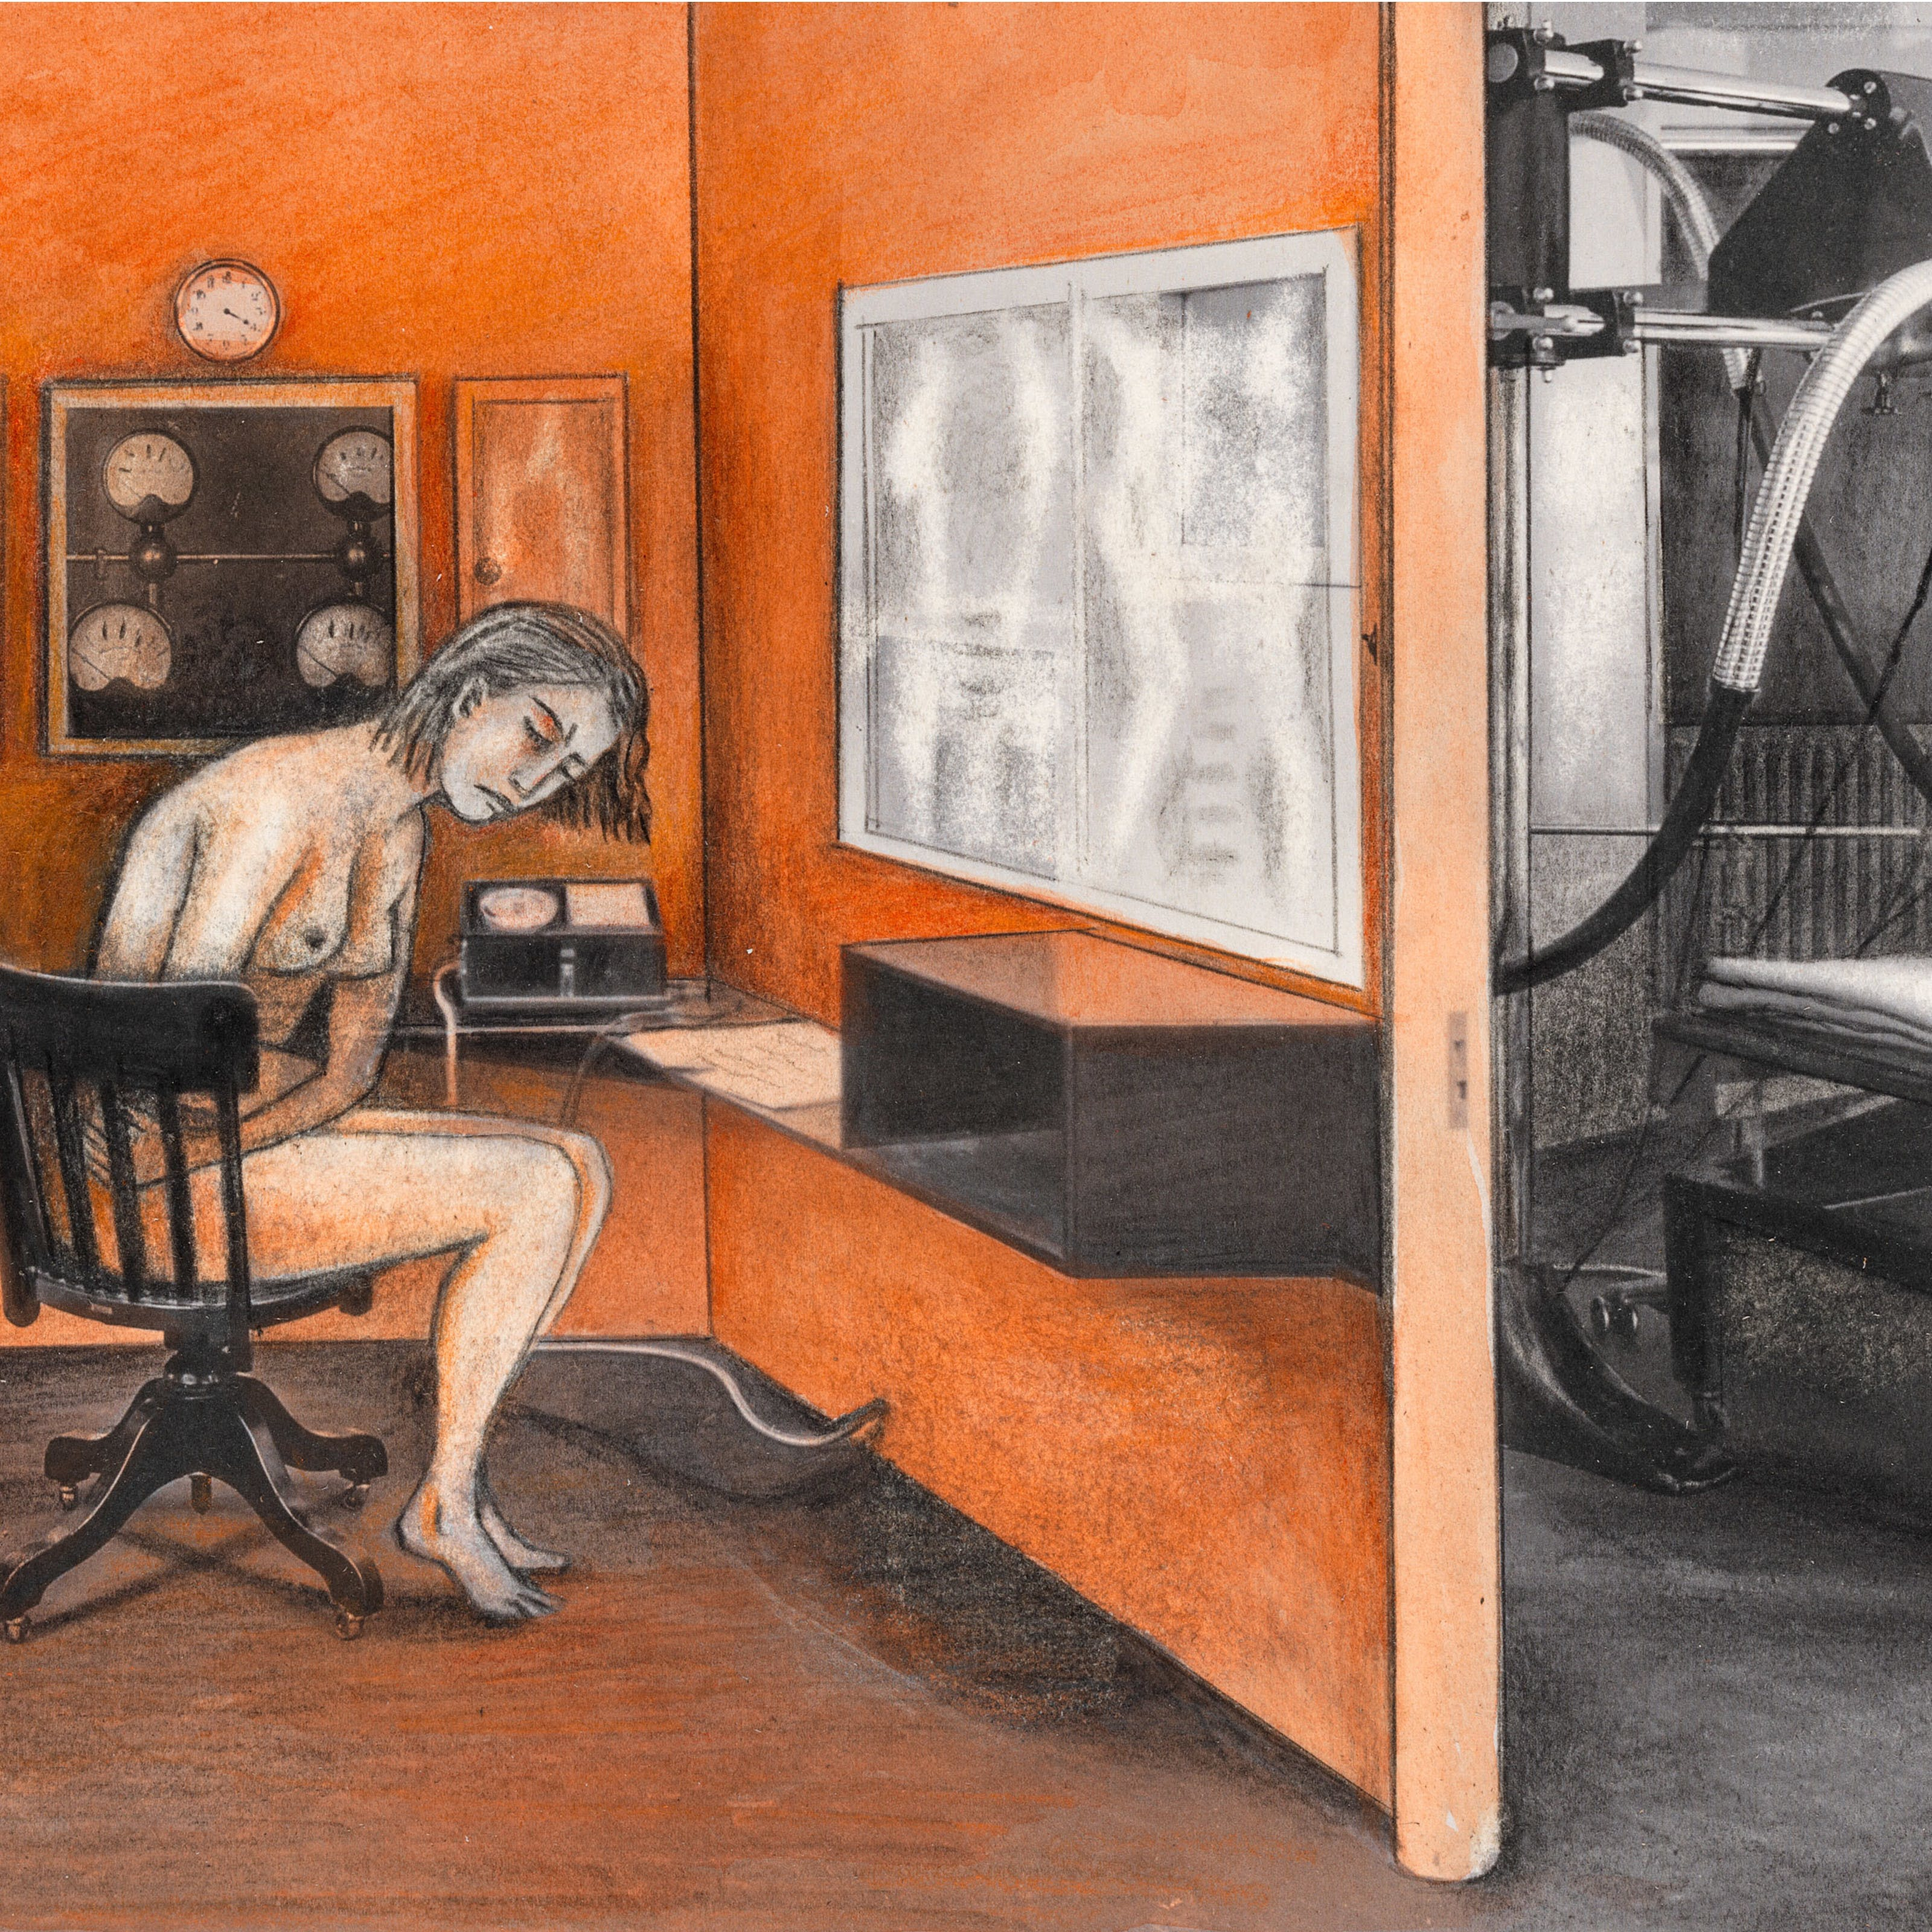 Collage and illustration of a hospital X-Ray room.  In the centre of the room is an unclothed woman sat on a black chair seemingly in pain with her eyes closed clutching her belly. Around her are various control boards with dials and x-ray like pictures on the wall.  Through a doorway on the right there is a hospital bed with various X-ray apparatus over it.  The image is primarily black and white, with the left side room having been coloured various shades of orange and red.